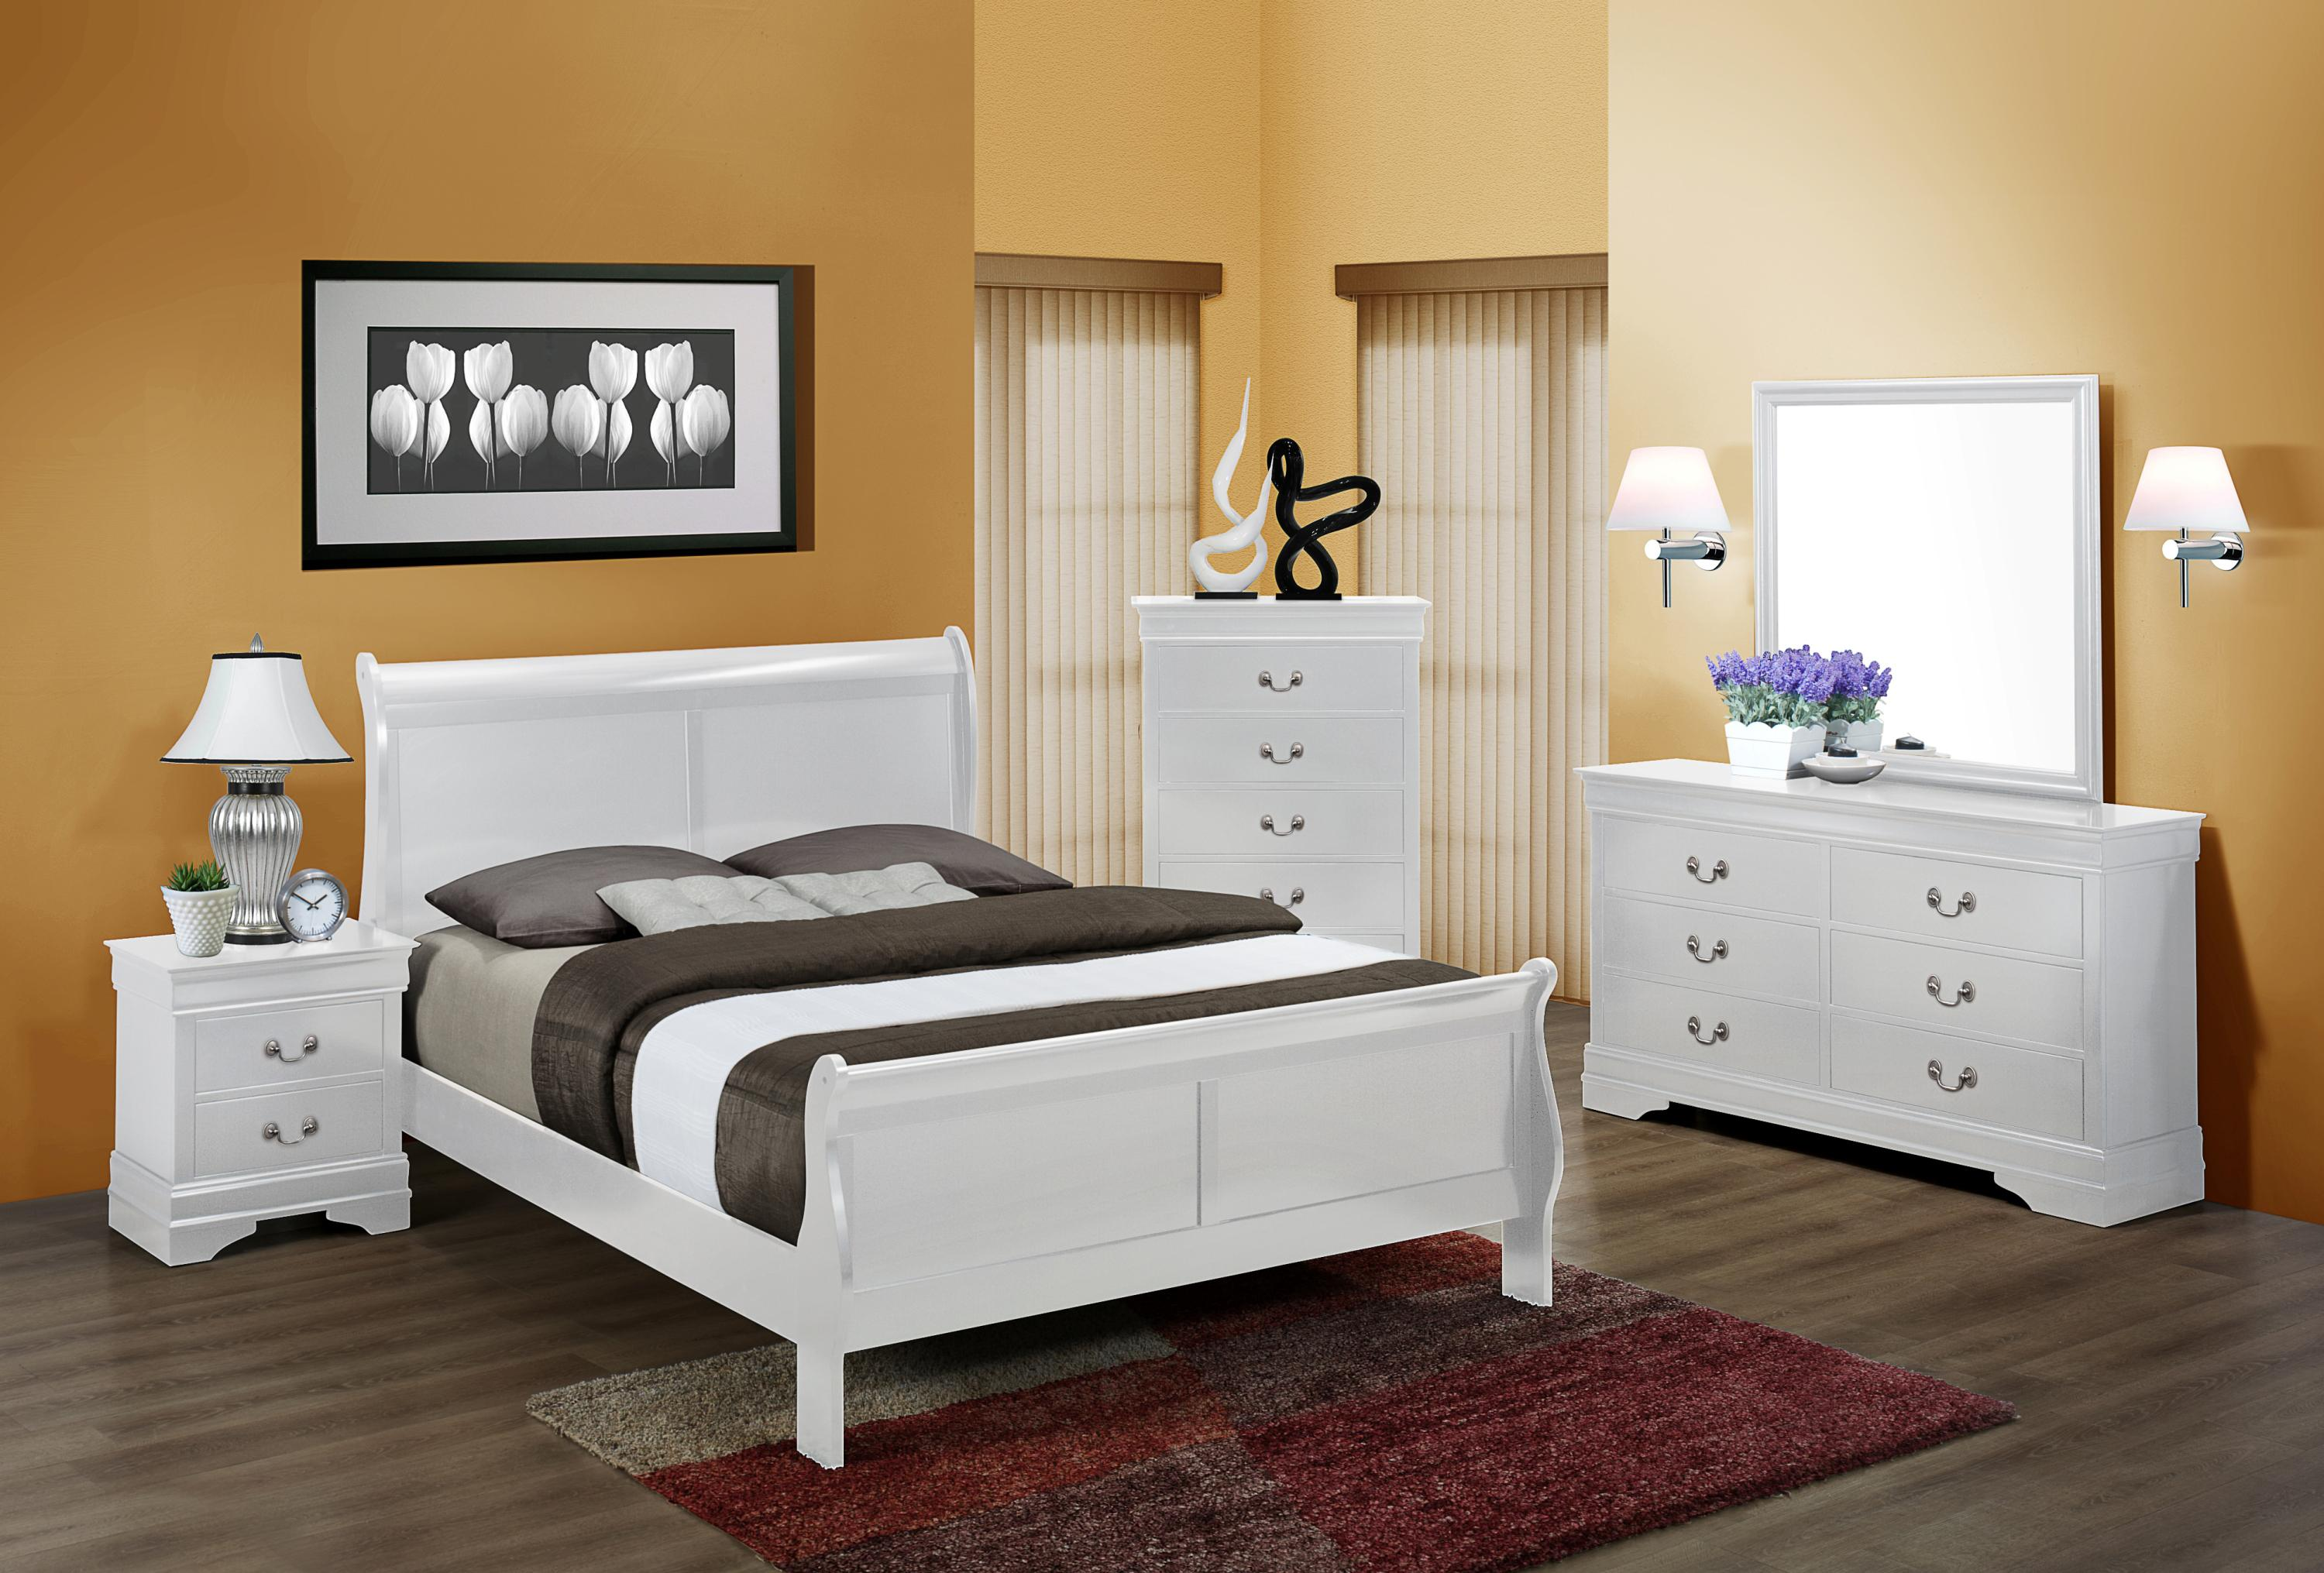 Crown Mark Louis Phillipe California King Bedroom Group - Item Number: B3600 CK Bedroom Group 1